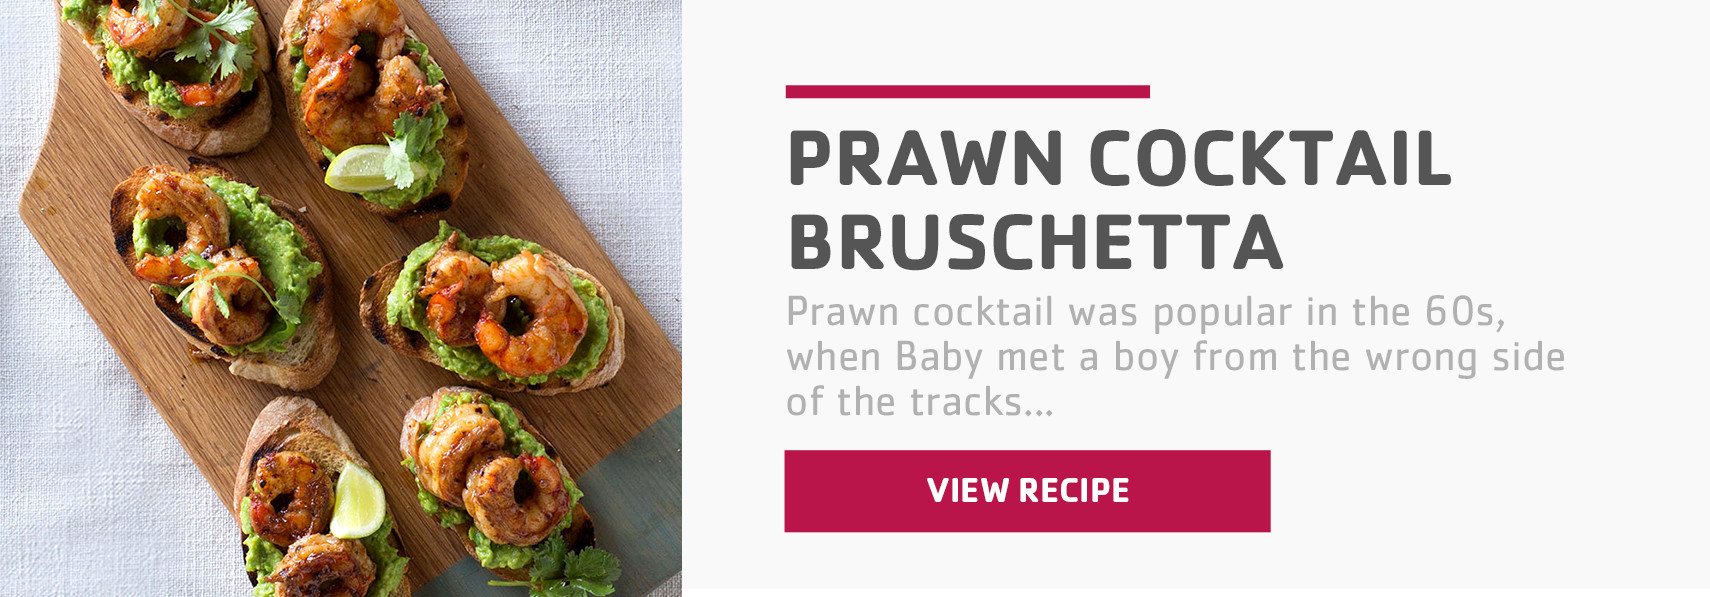 Prawn cocktail bruschetta recipe listing page banner.jpg